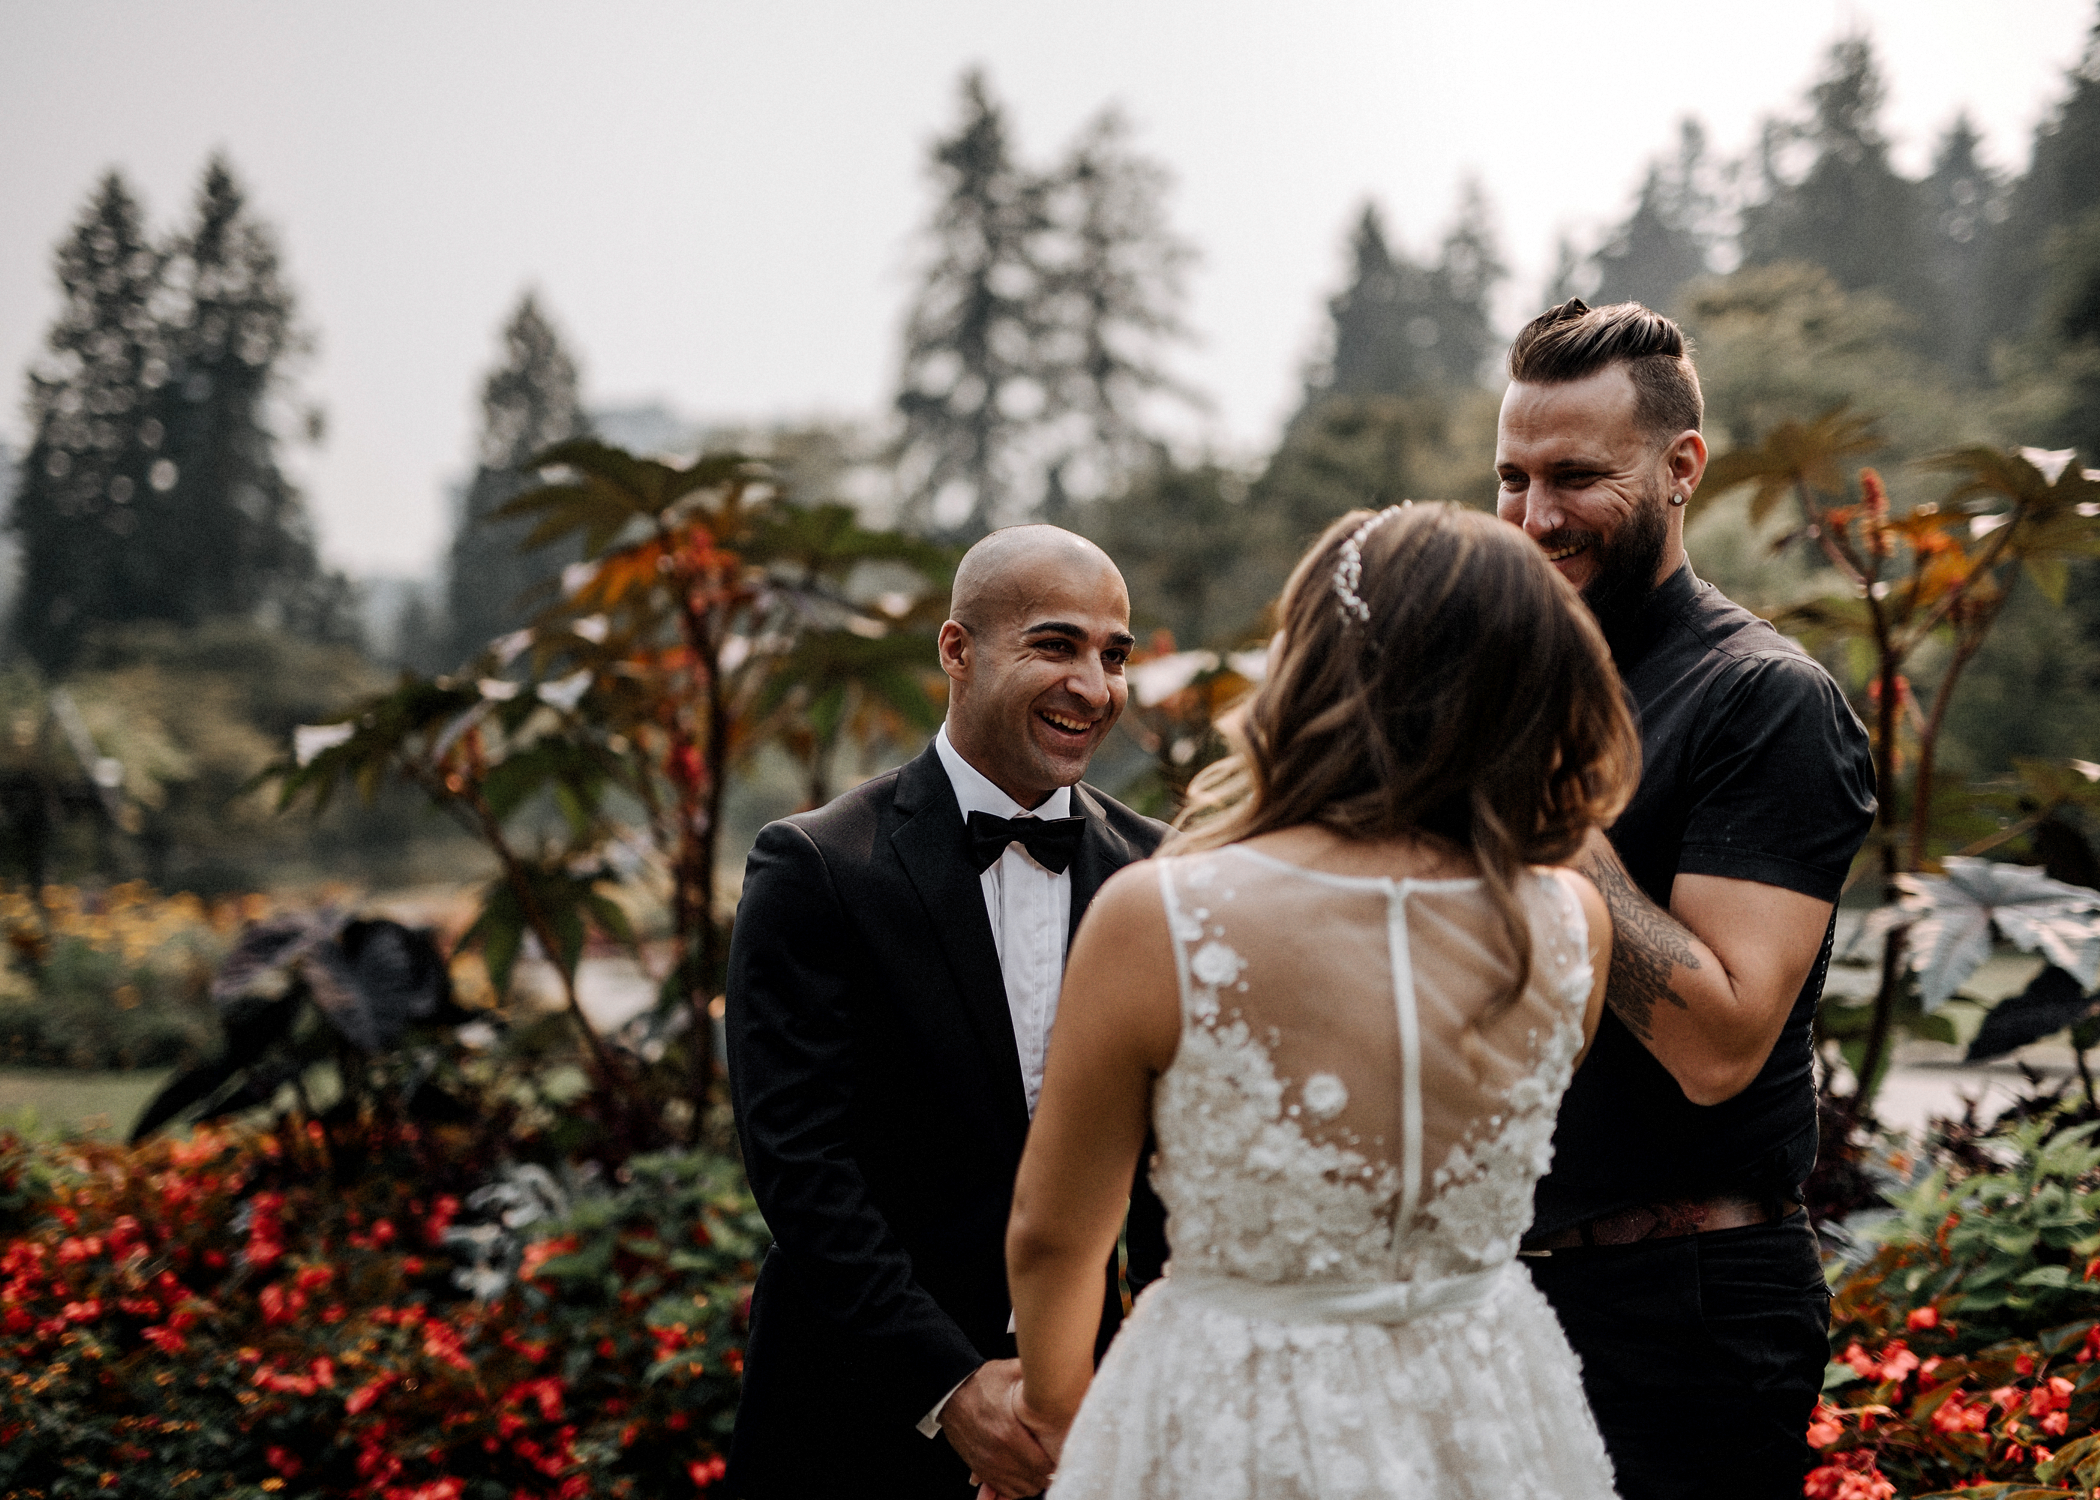 011-kaoverii-silva-LM-wedding-vancouver-photography-elopement-blog.png